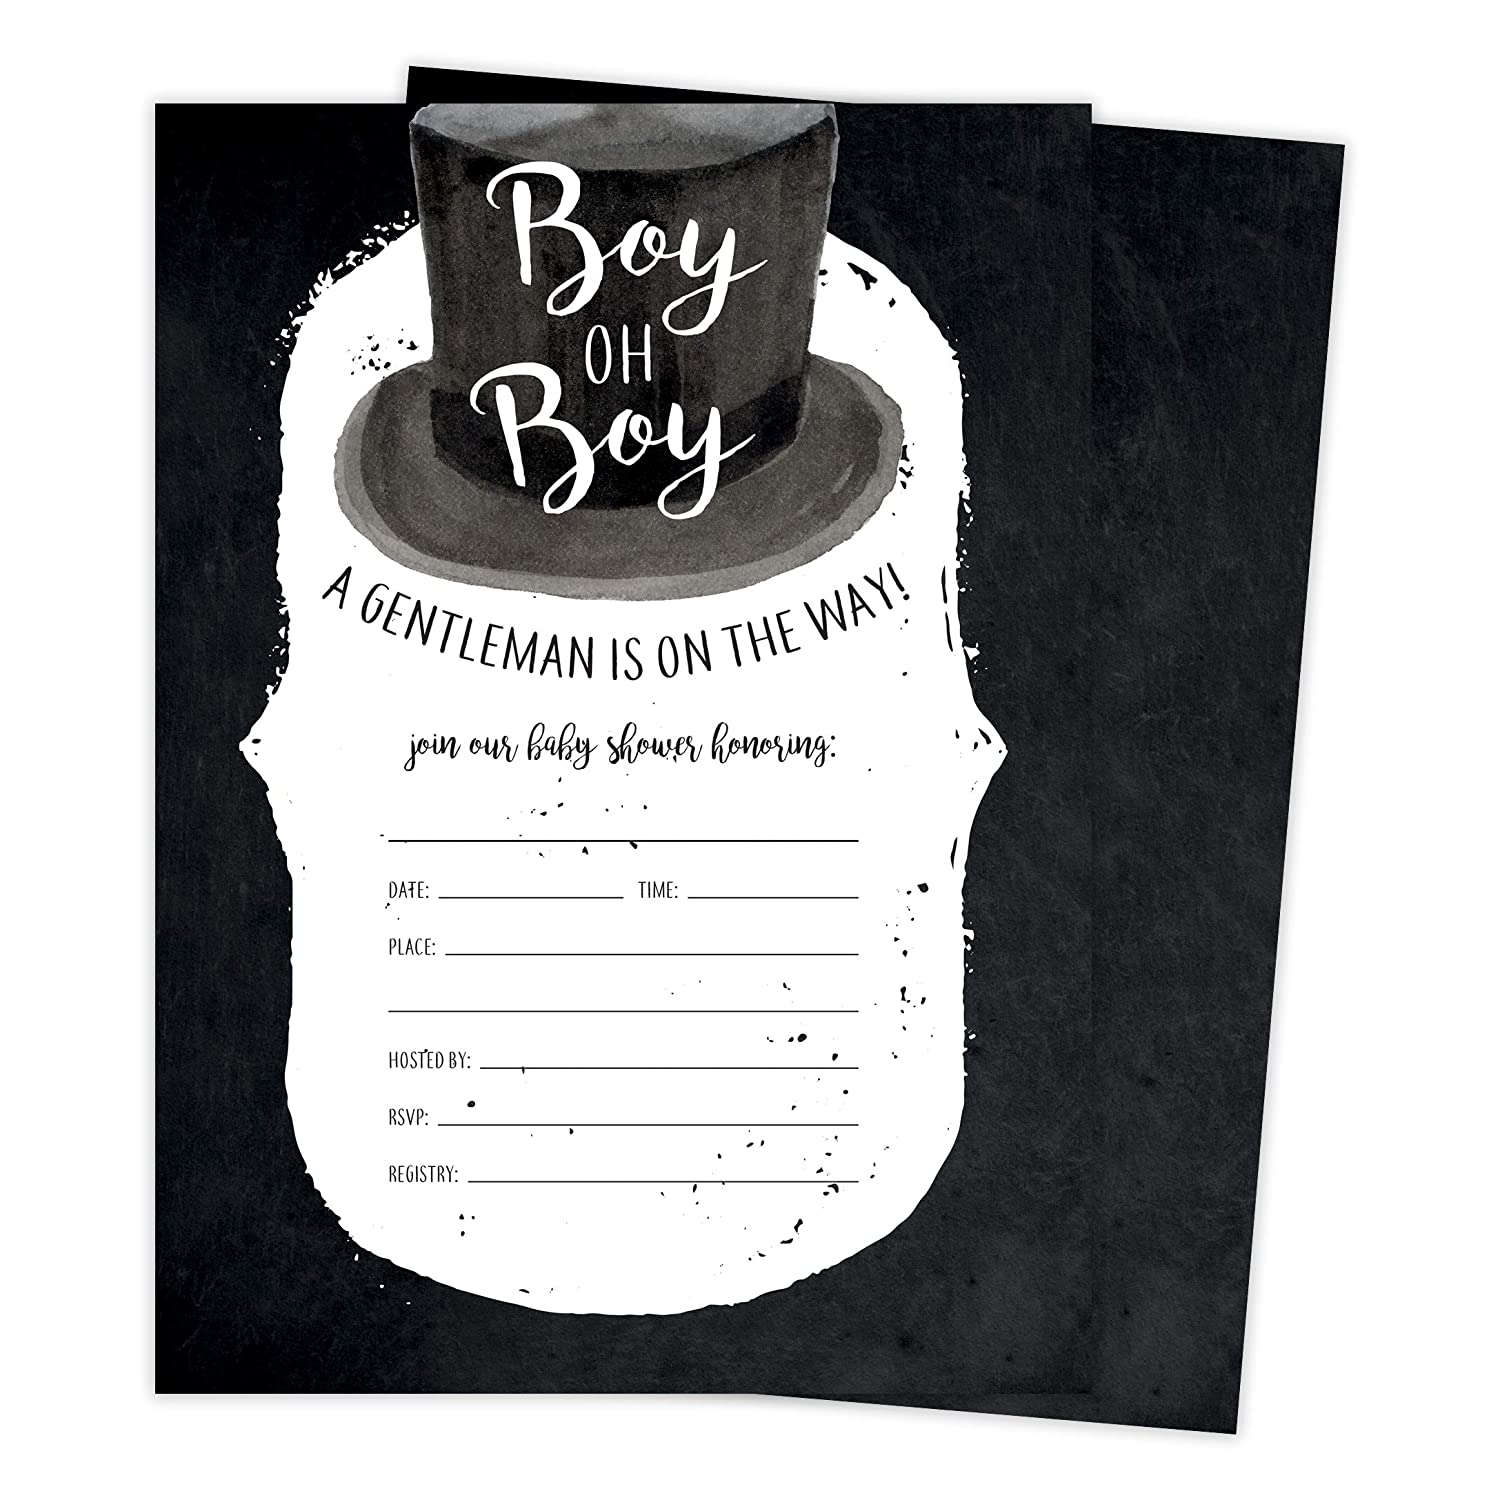 Generic Boy 2 Baby Shower Invitations Invite Cards 25 Count With Envelopes Seal Stickers Vinyl Boy